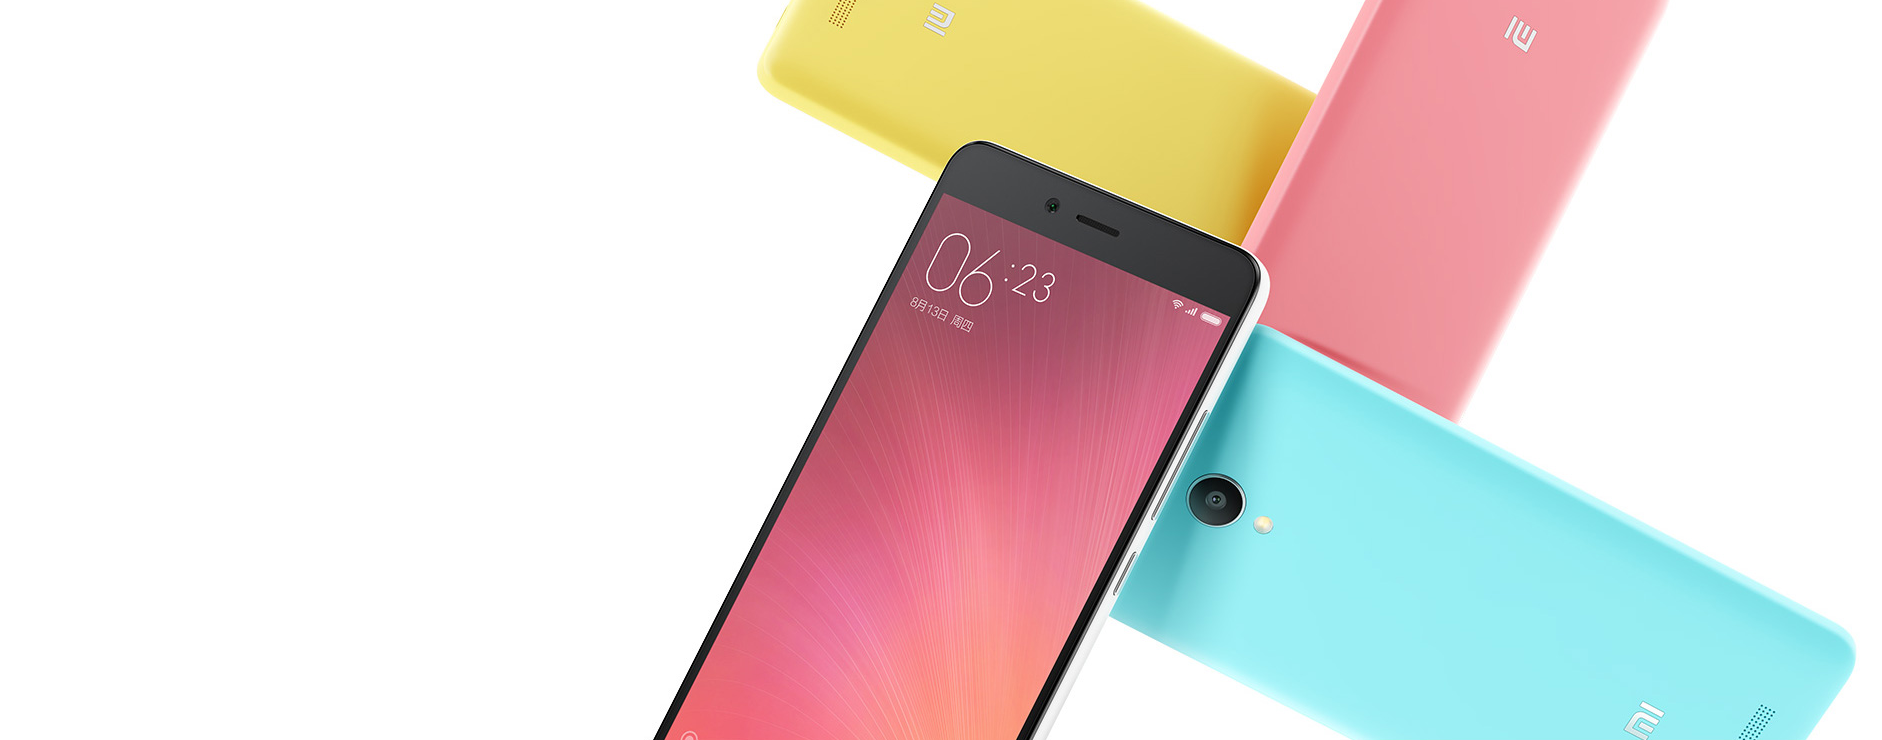 Xiaomi Redmi Note 2 shatters sales records for the company